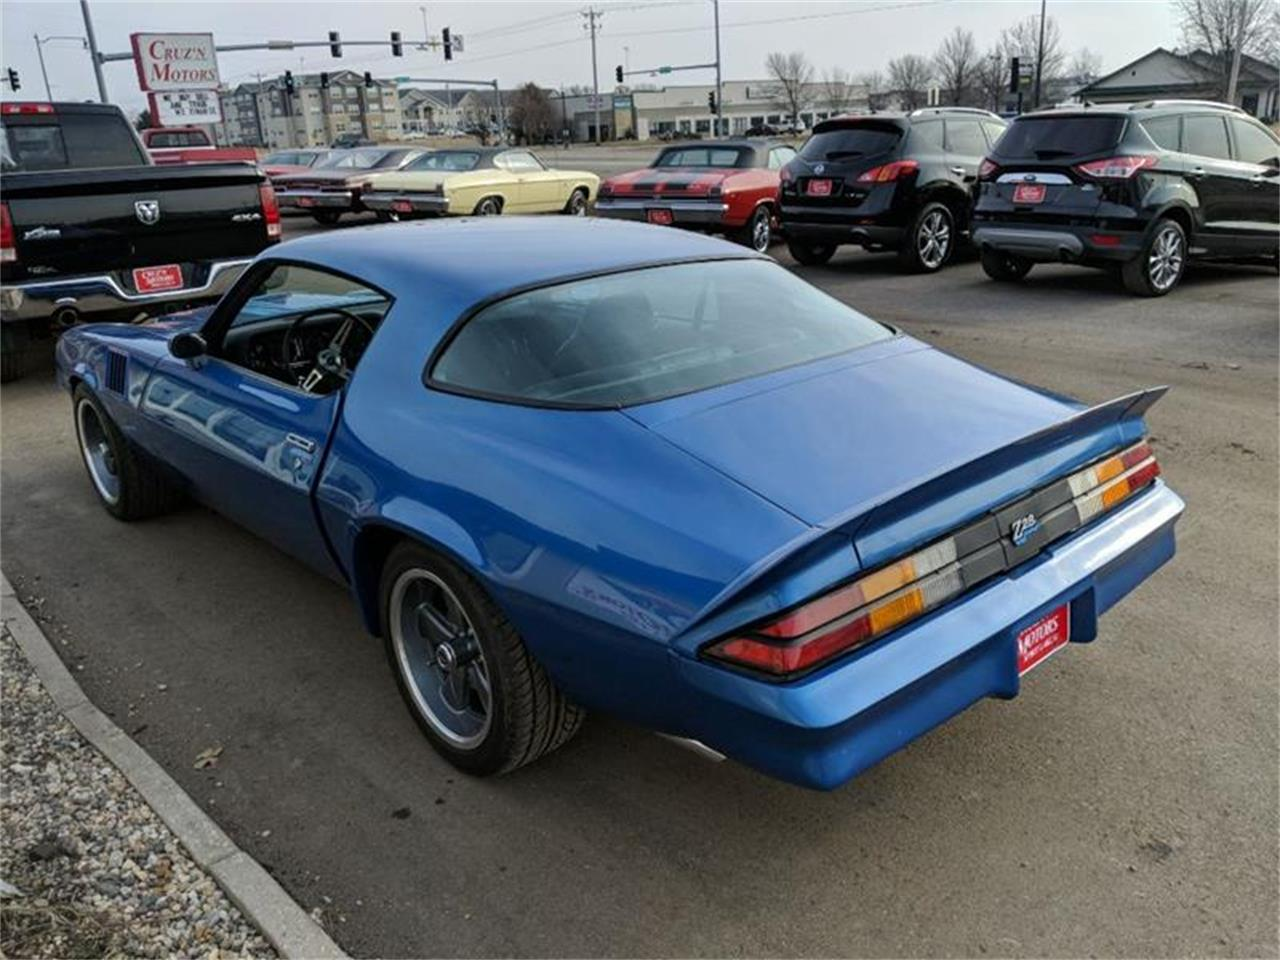 Large Picture of 1978 Chevrolet Camaro located in Spirit Lake Iowa Auction Vehicle - PX97